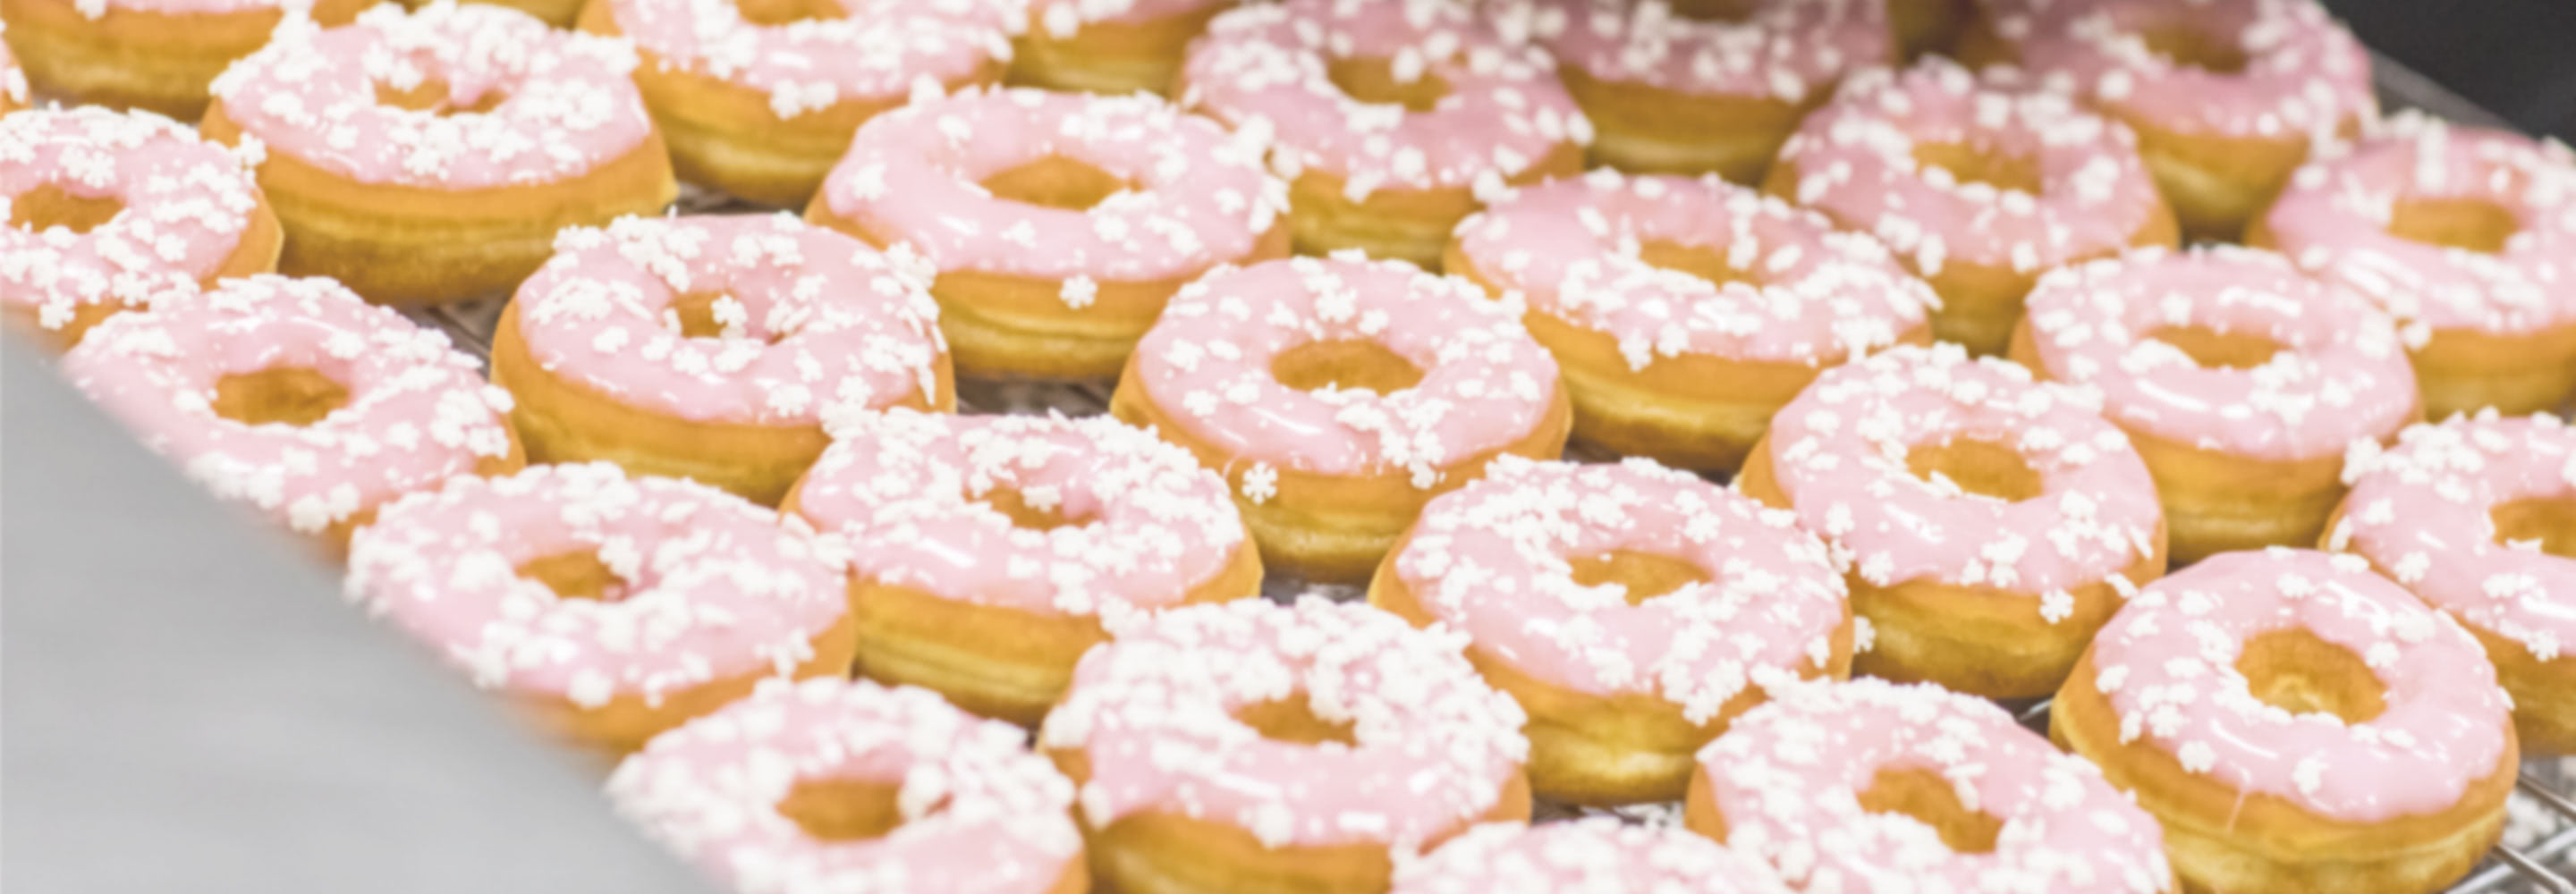 Image of donuts with snowflake sprinkles